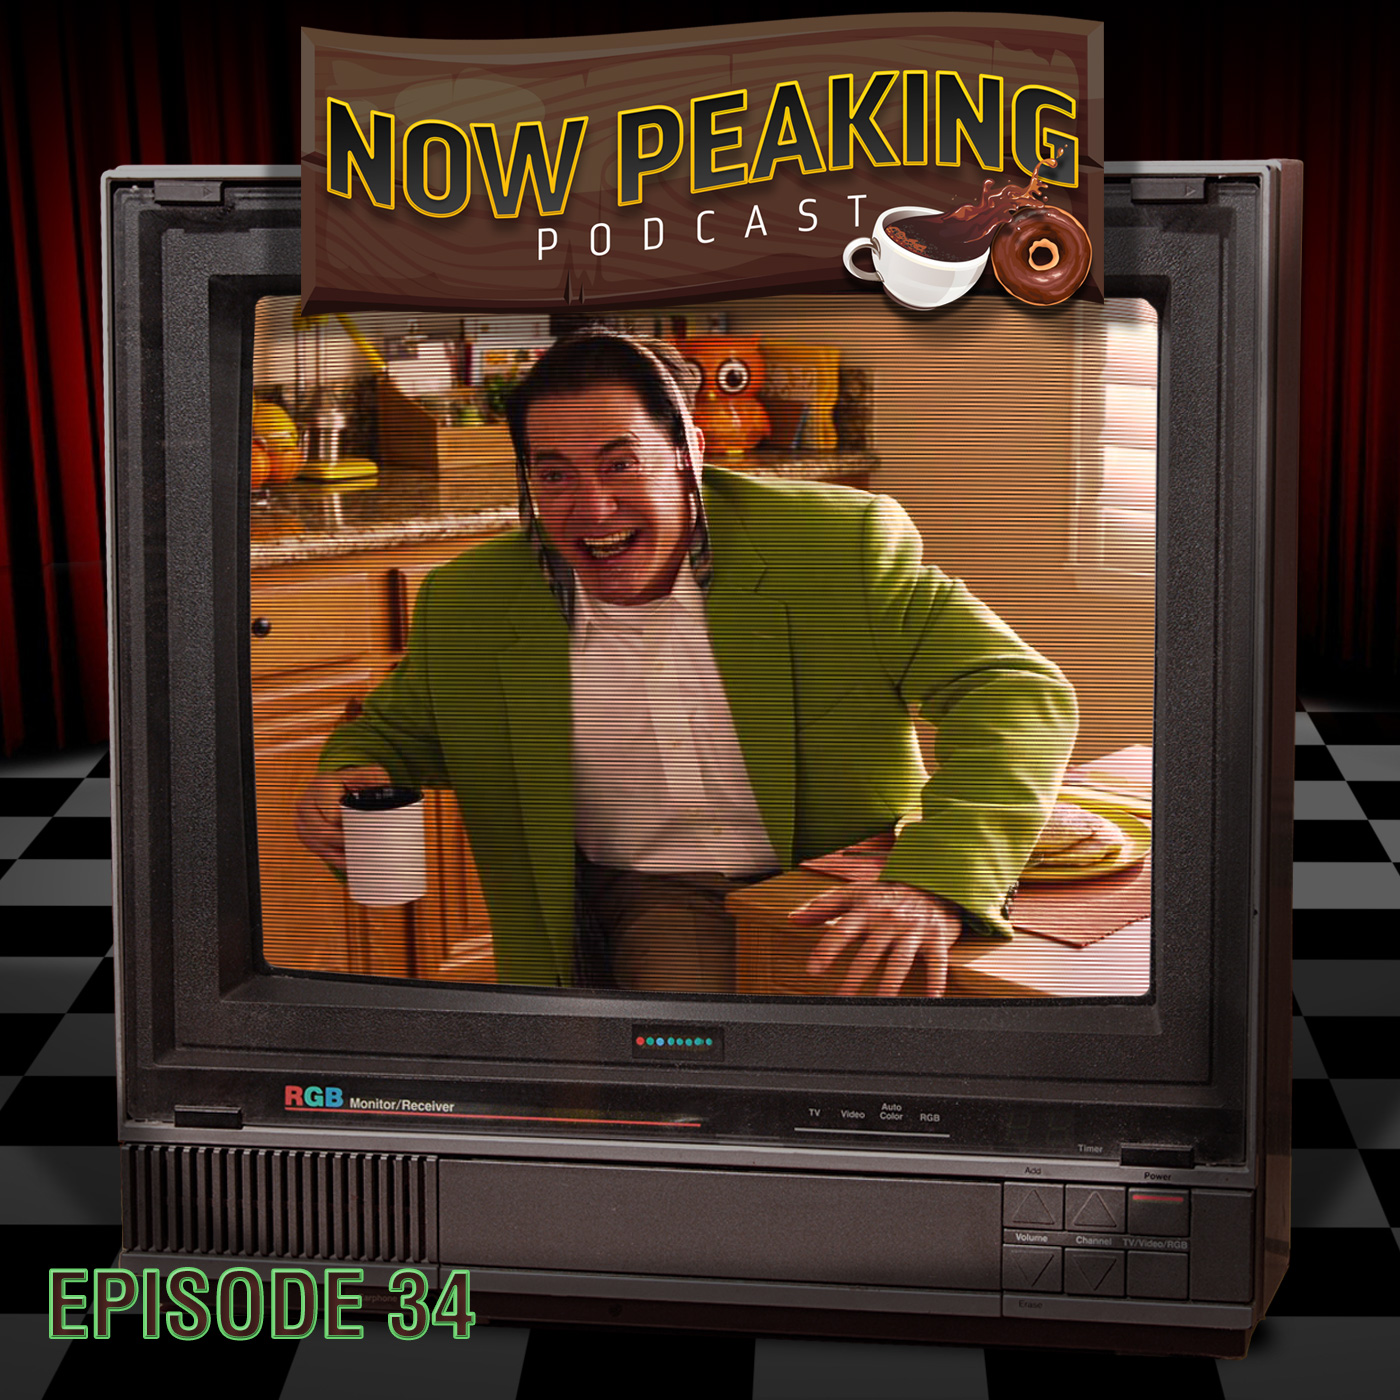 Episode 34: …brings back some memories. - For Subscribers